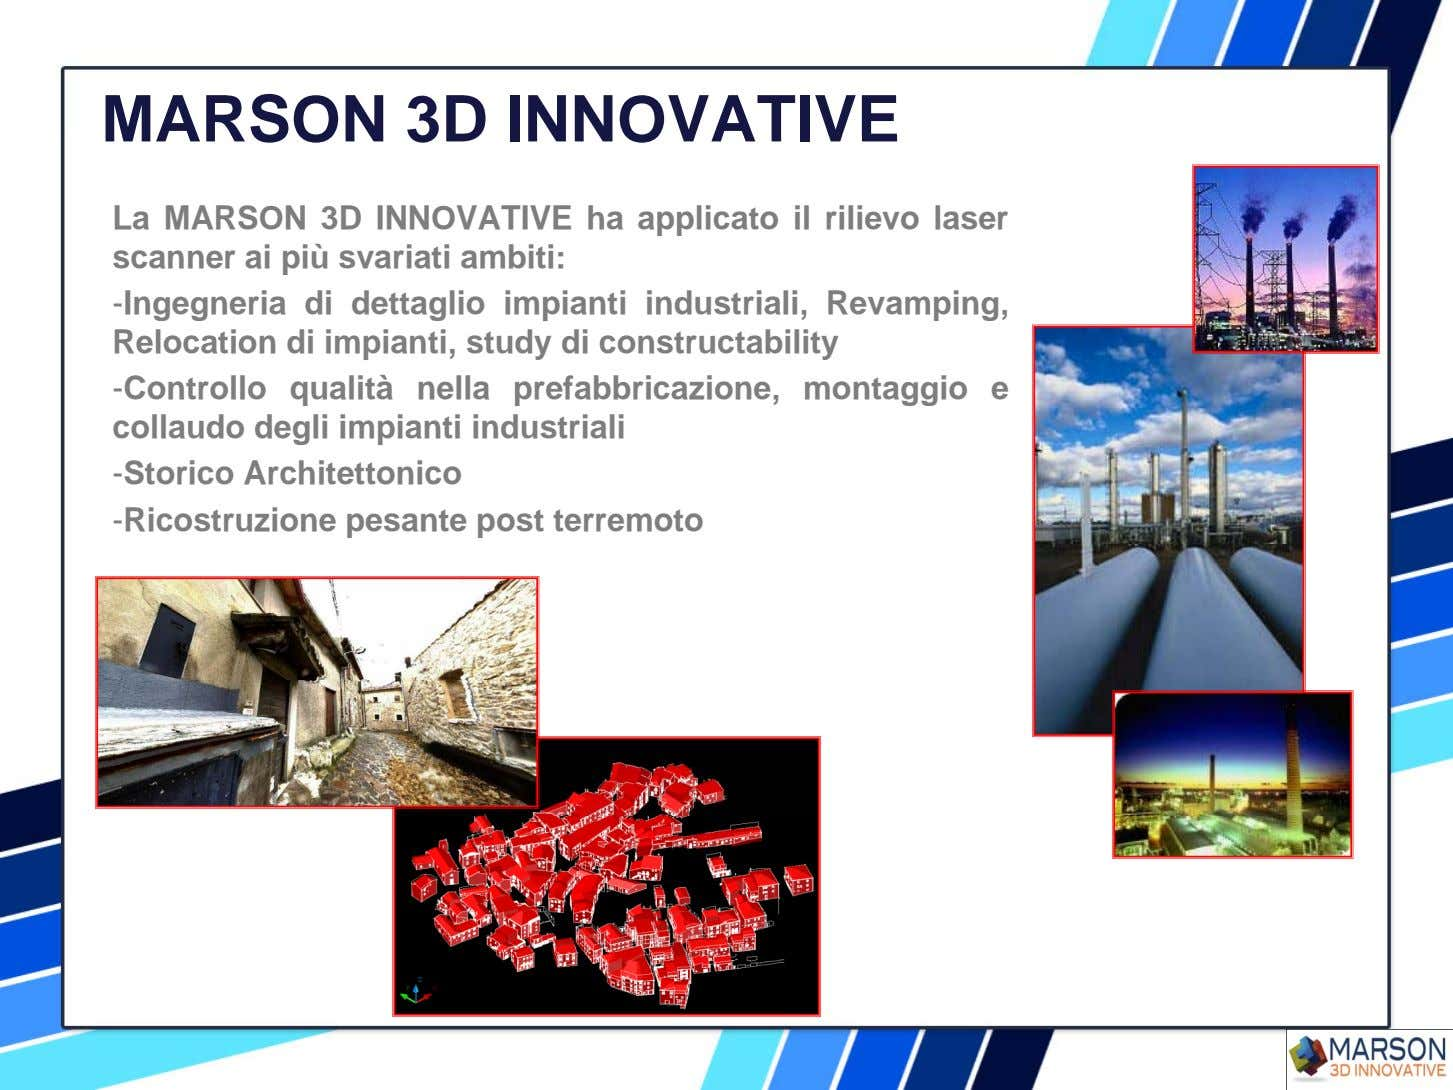 MARSON 3D INNOVATIVE La MARSON 3D INNOVATIVE ha applicato il rilievo laser scanner ai più